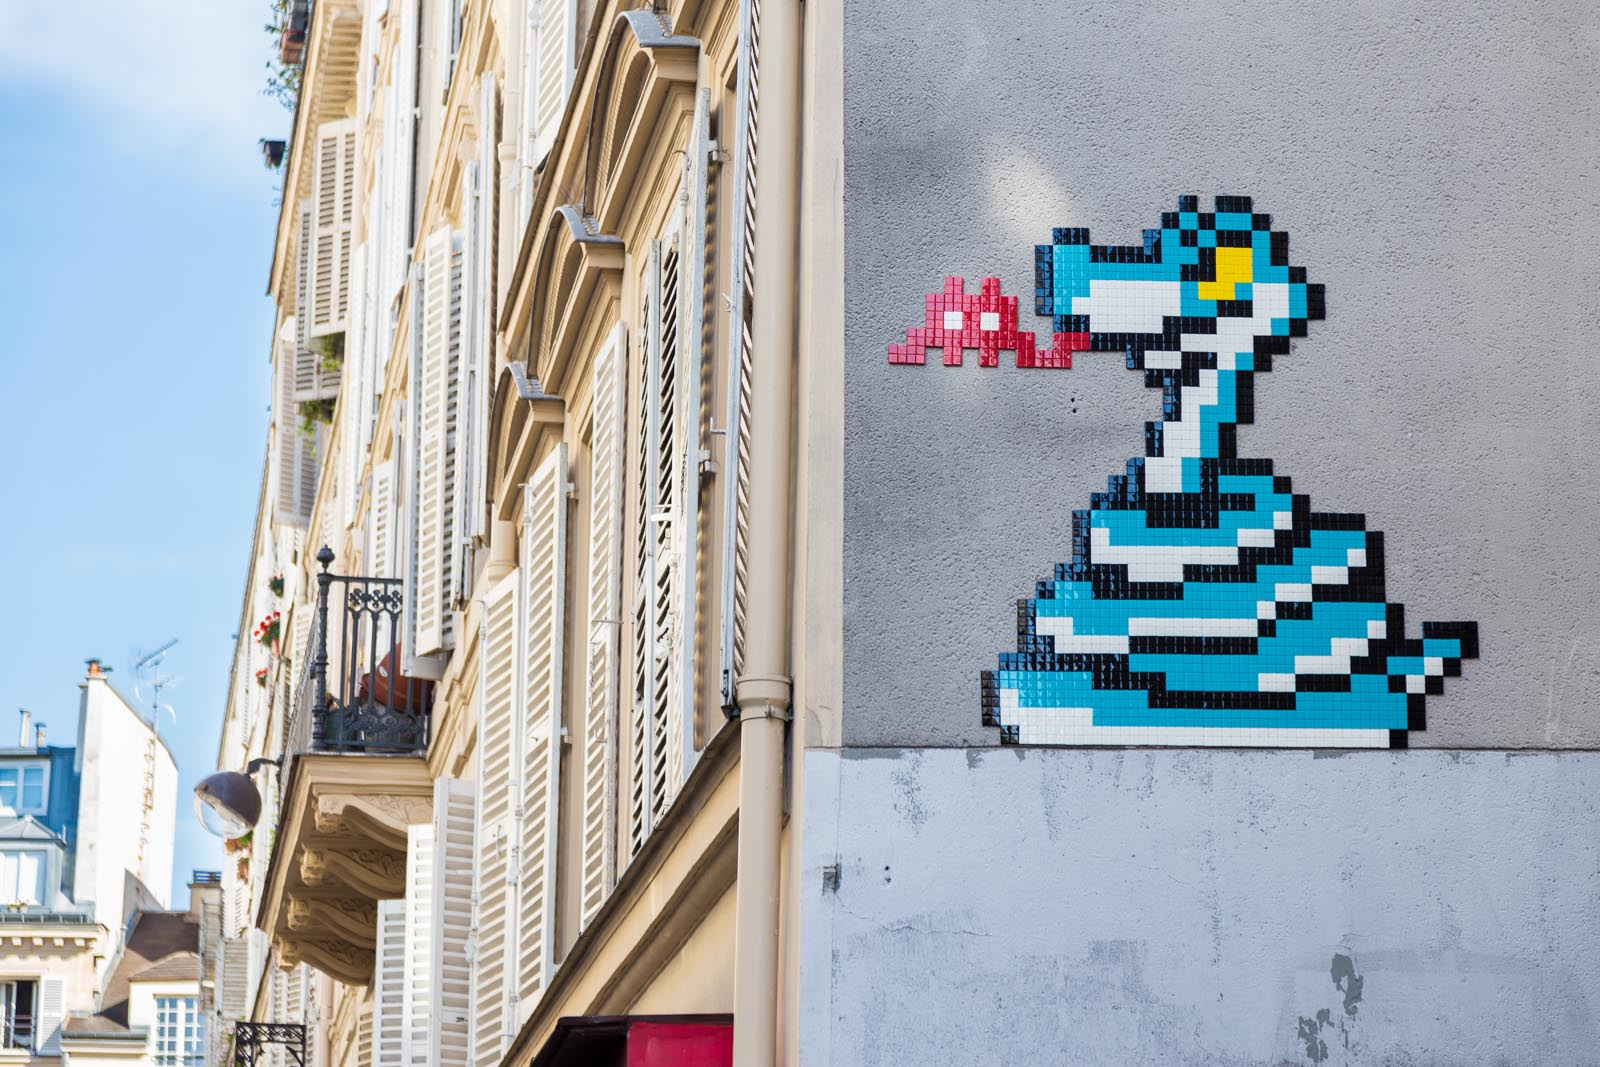 Kaa by Invader - Eté 2016